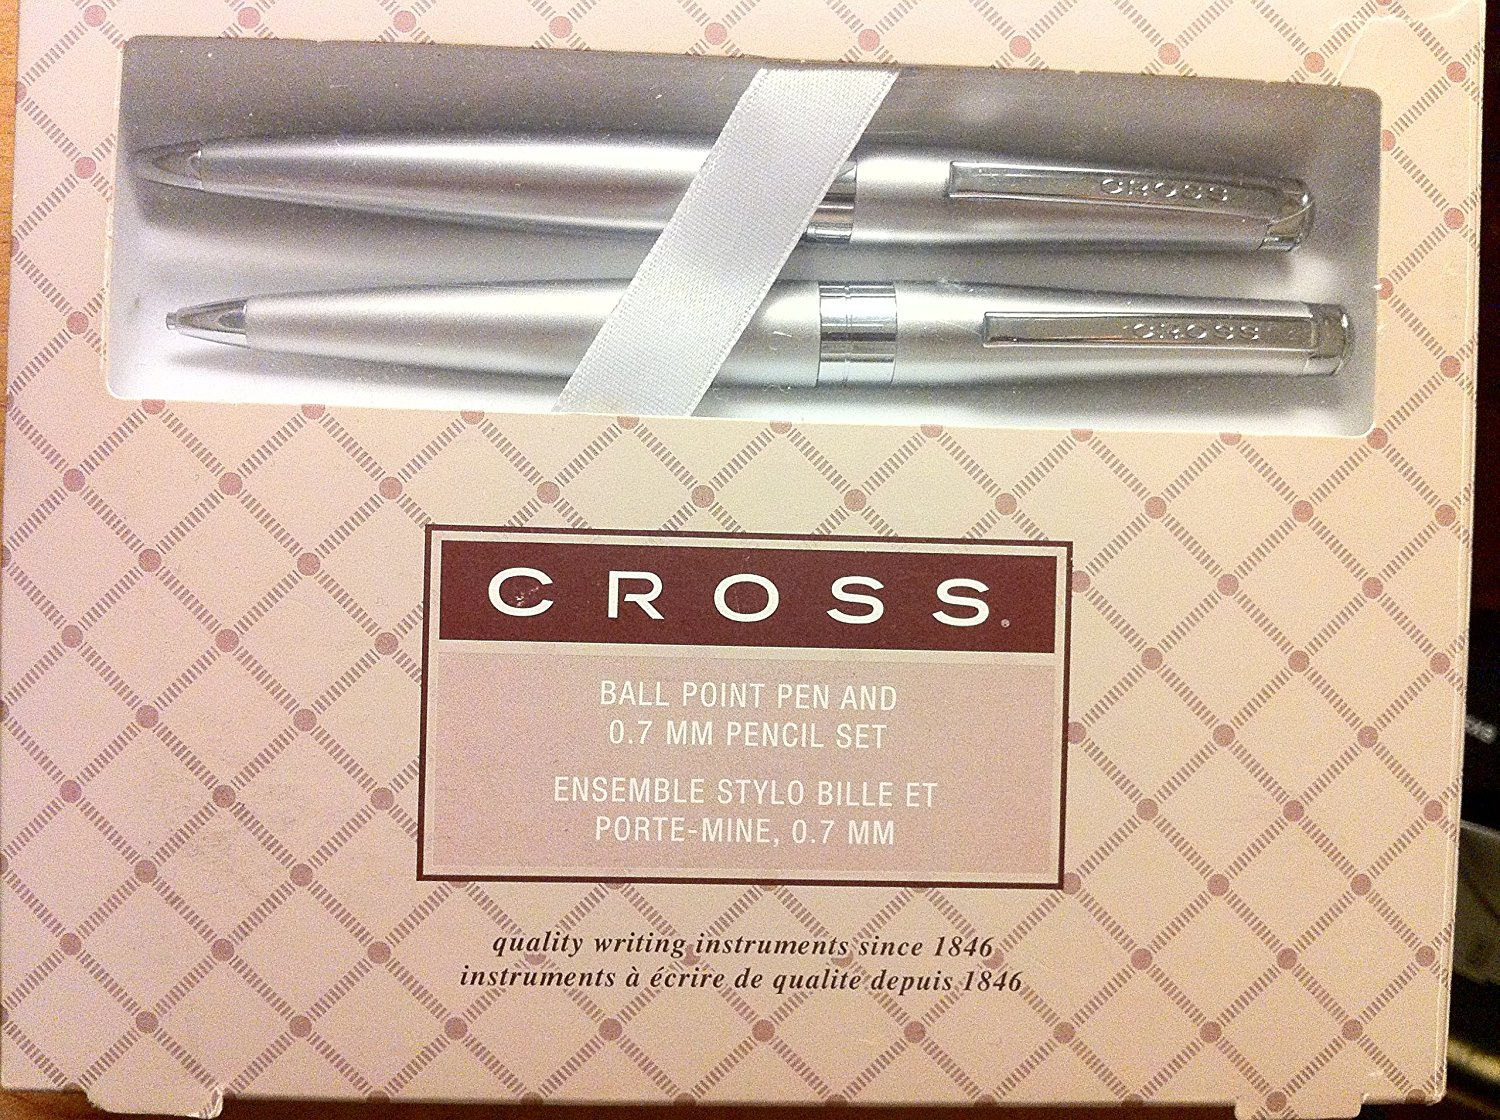 CROSS Ball Point Pen & Pencil .7mm STYLO BILLE Satin Chrome Finish